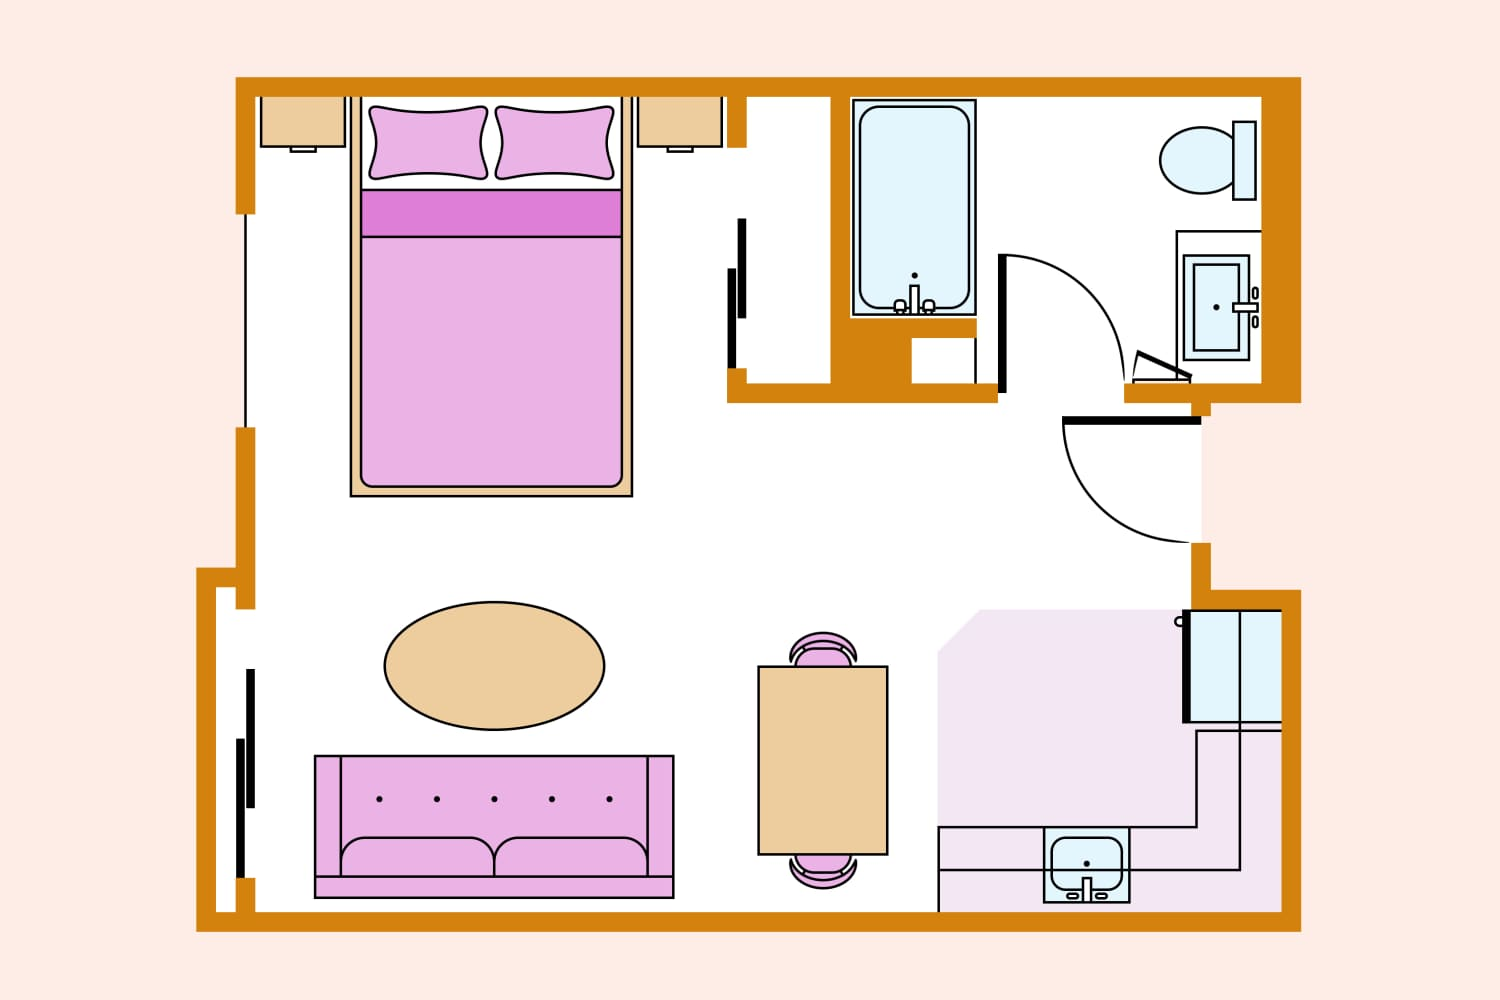 3 Studio Apartment Layout Ideas You Should Steal from One Very Creative Home Expert